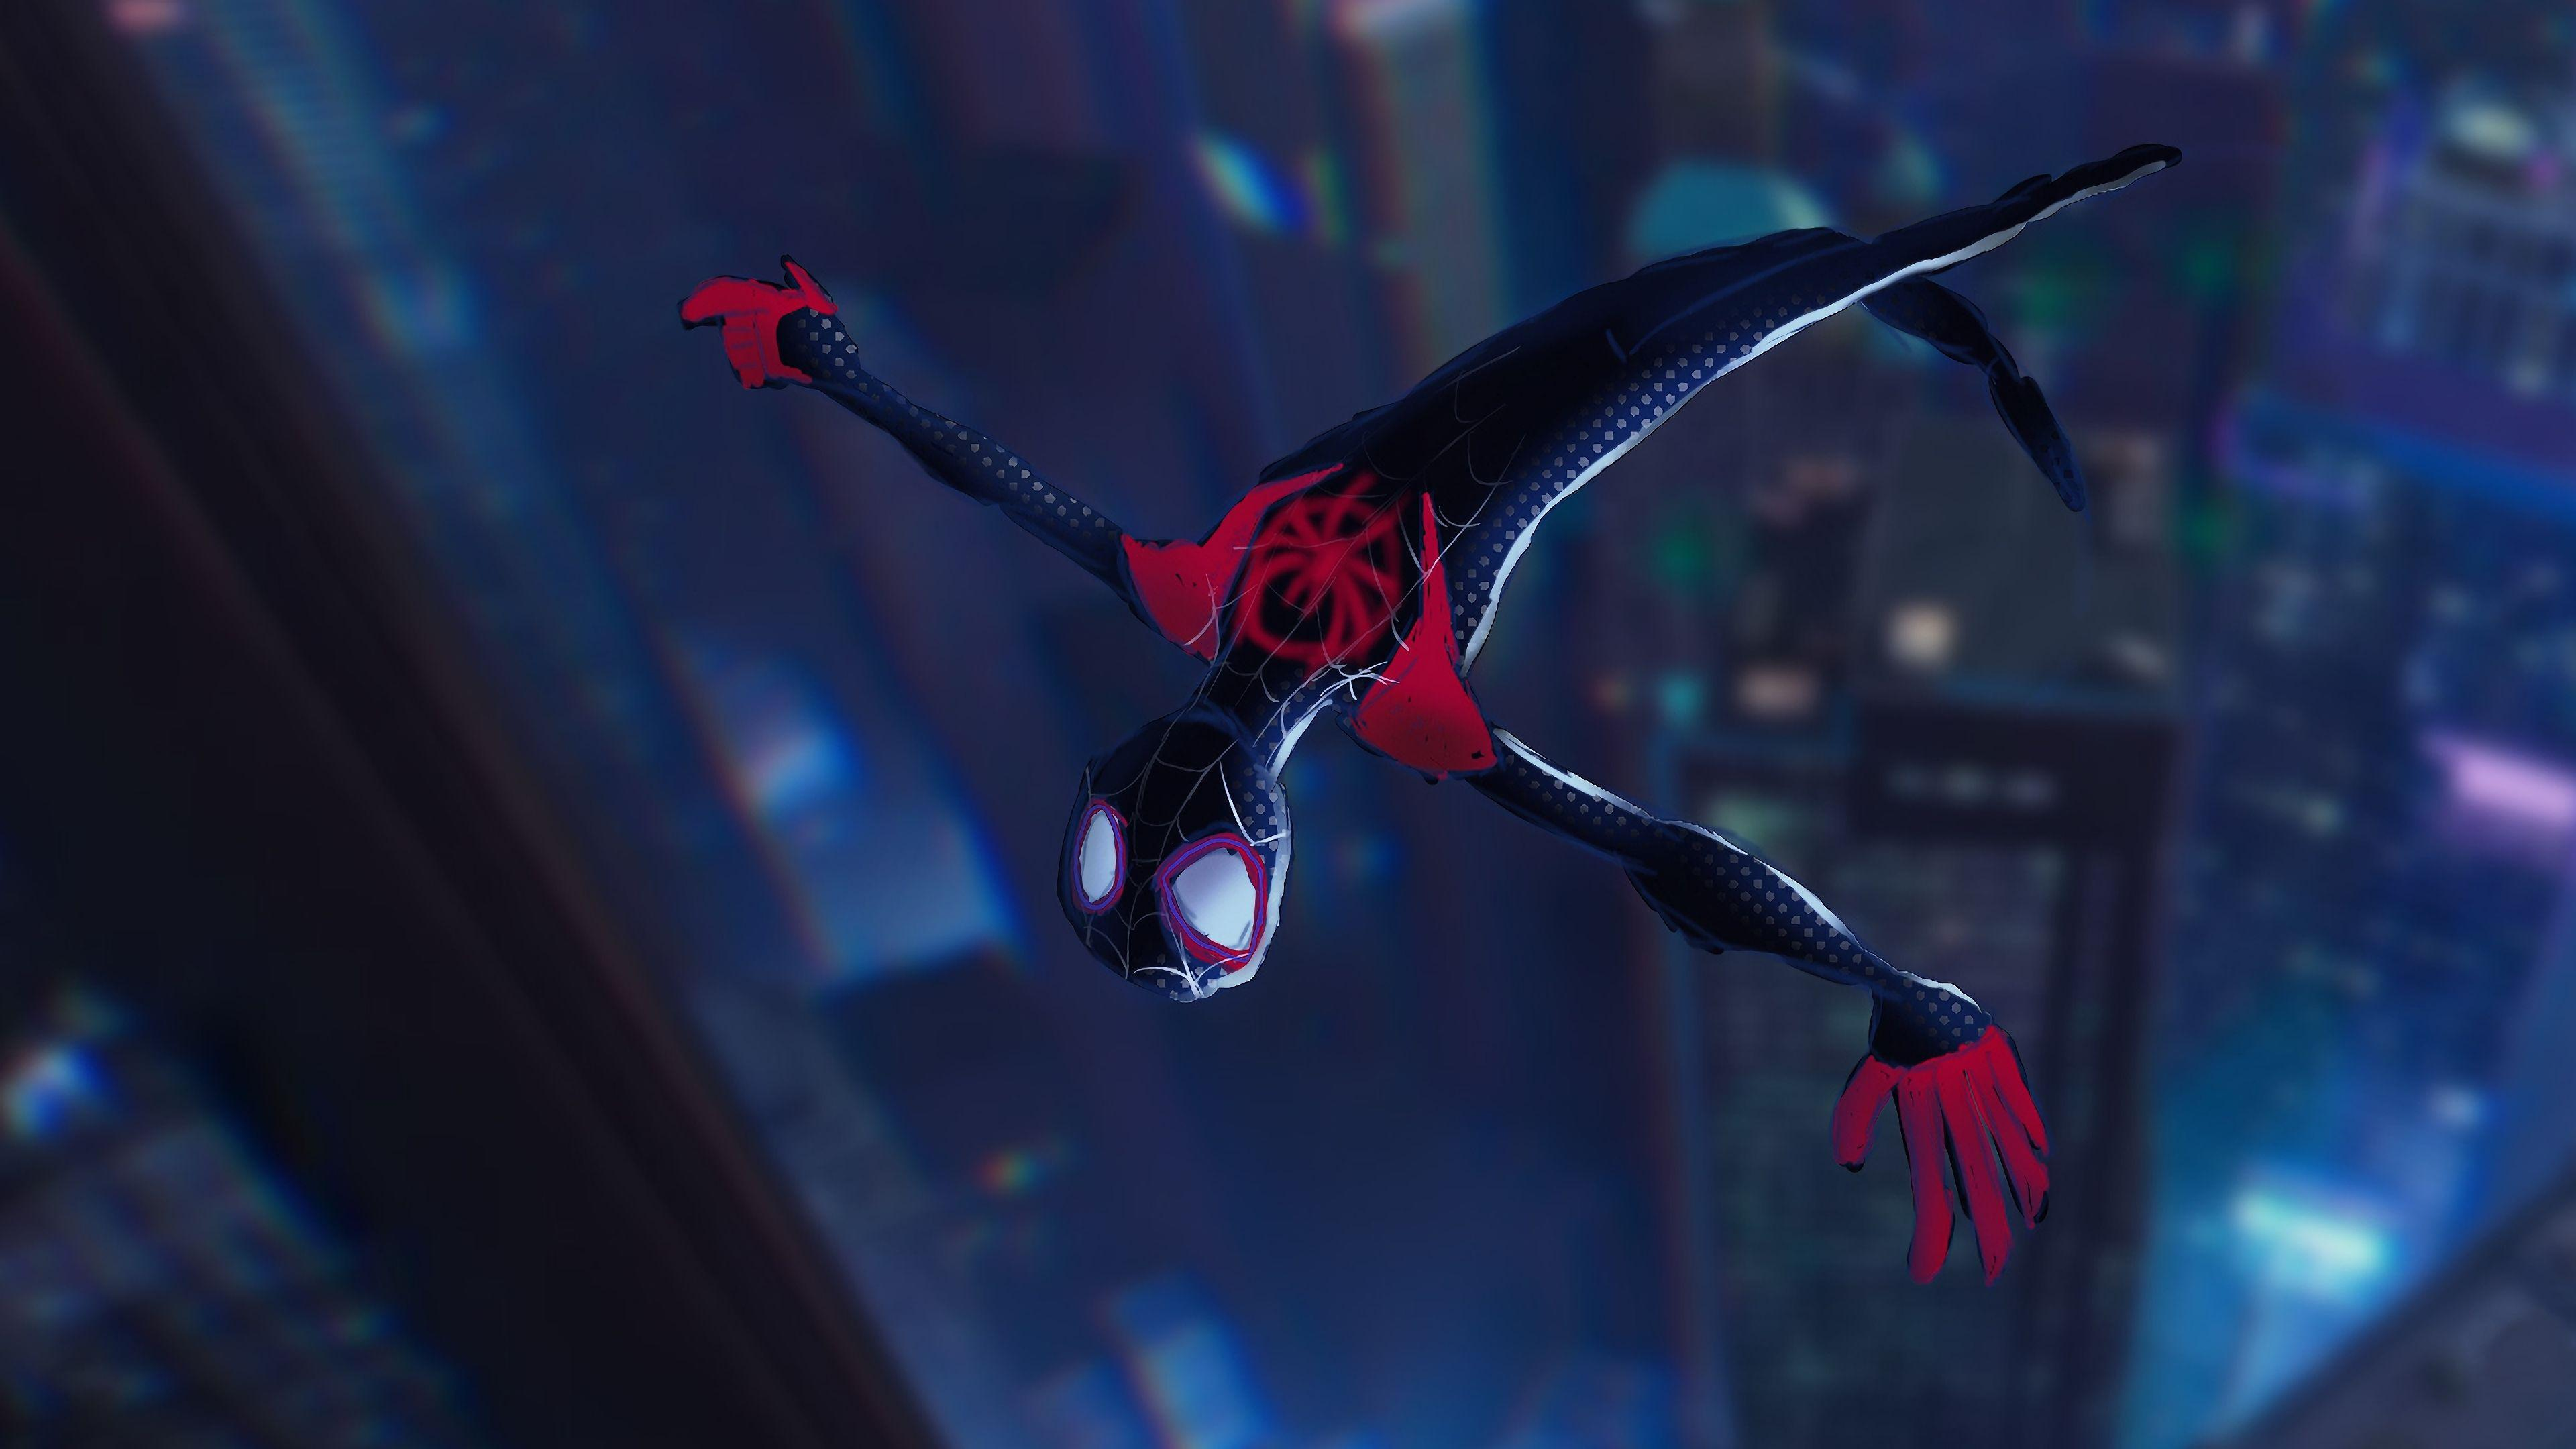 SpiderMan Into The Spider Verse 4k, HD Movies, 4k Wallpapers, Image